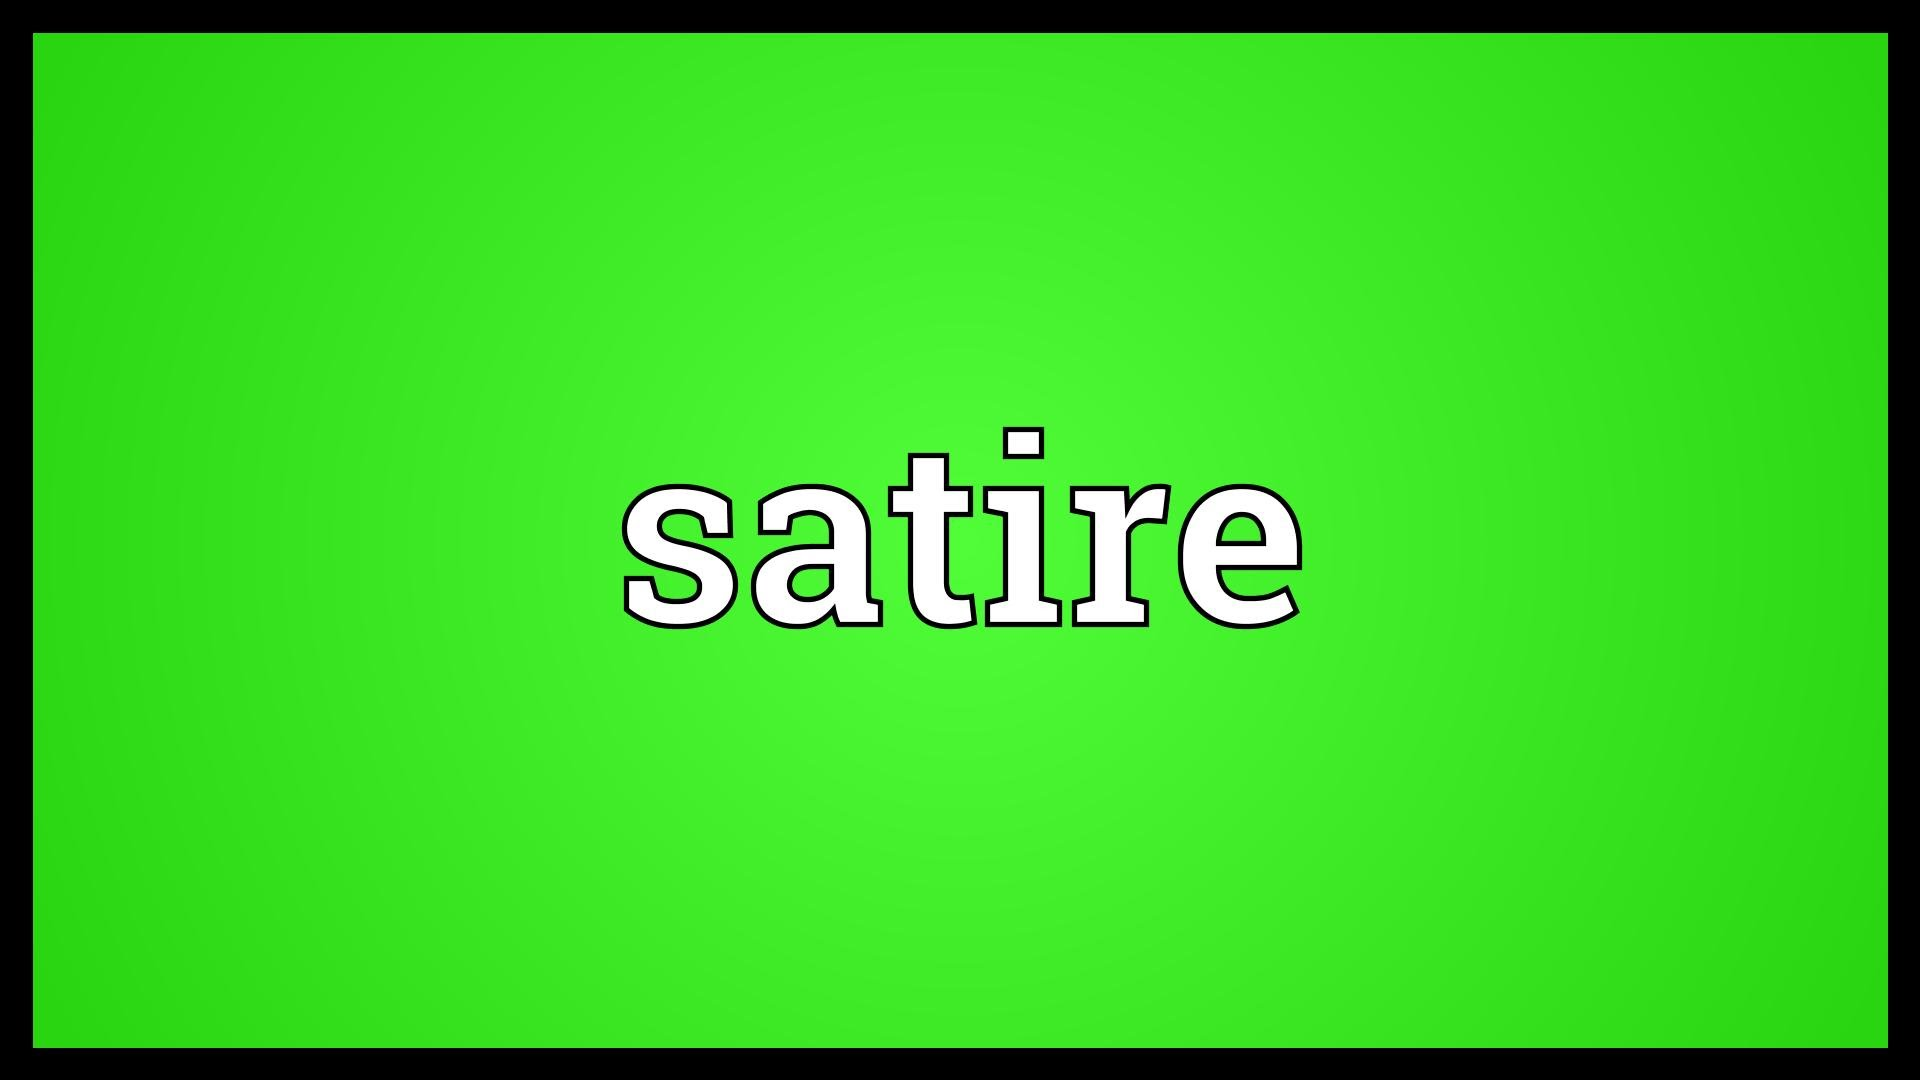 Satire Meaning.